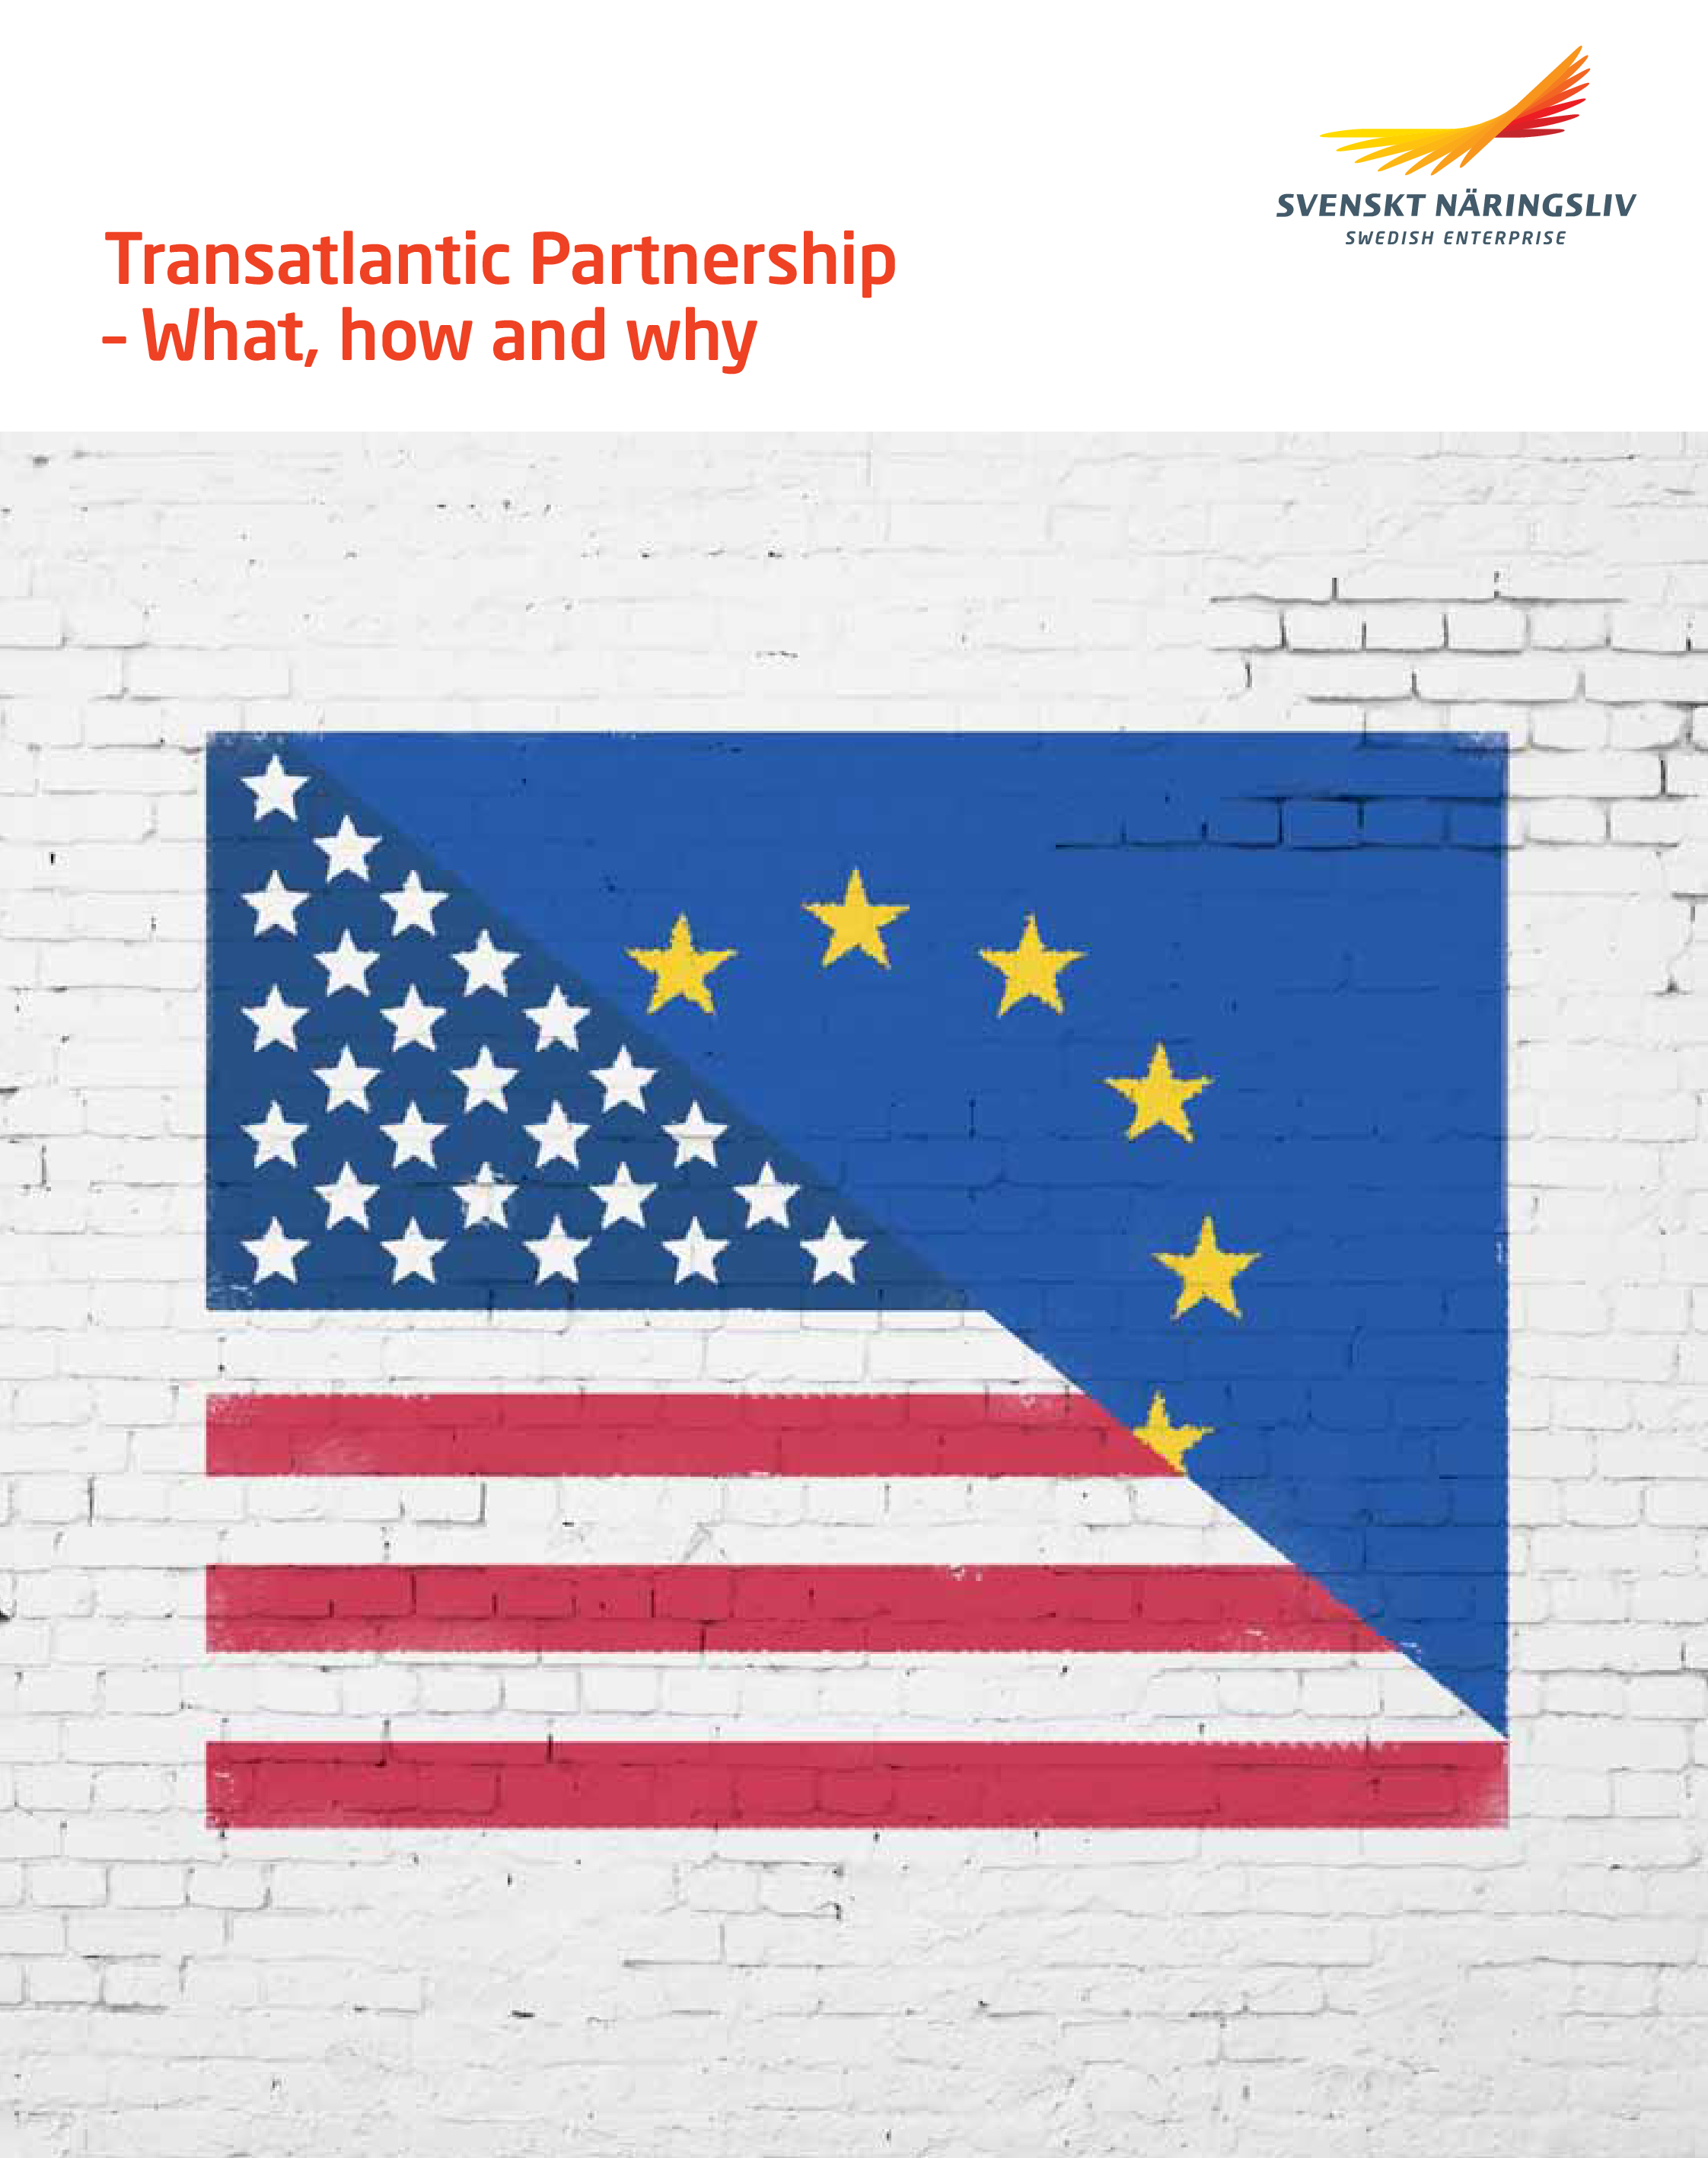 Transatlantic Partnership - What, how and why